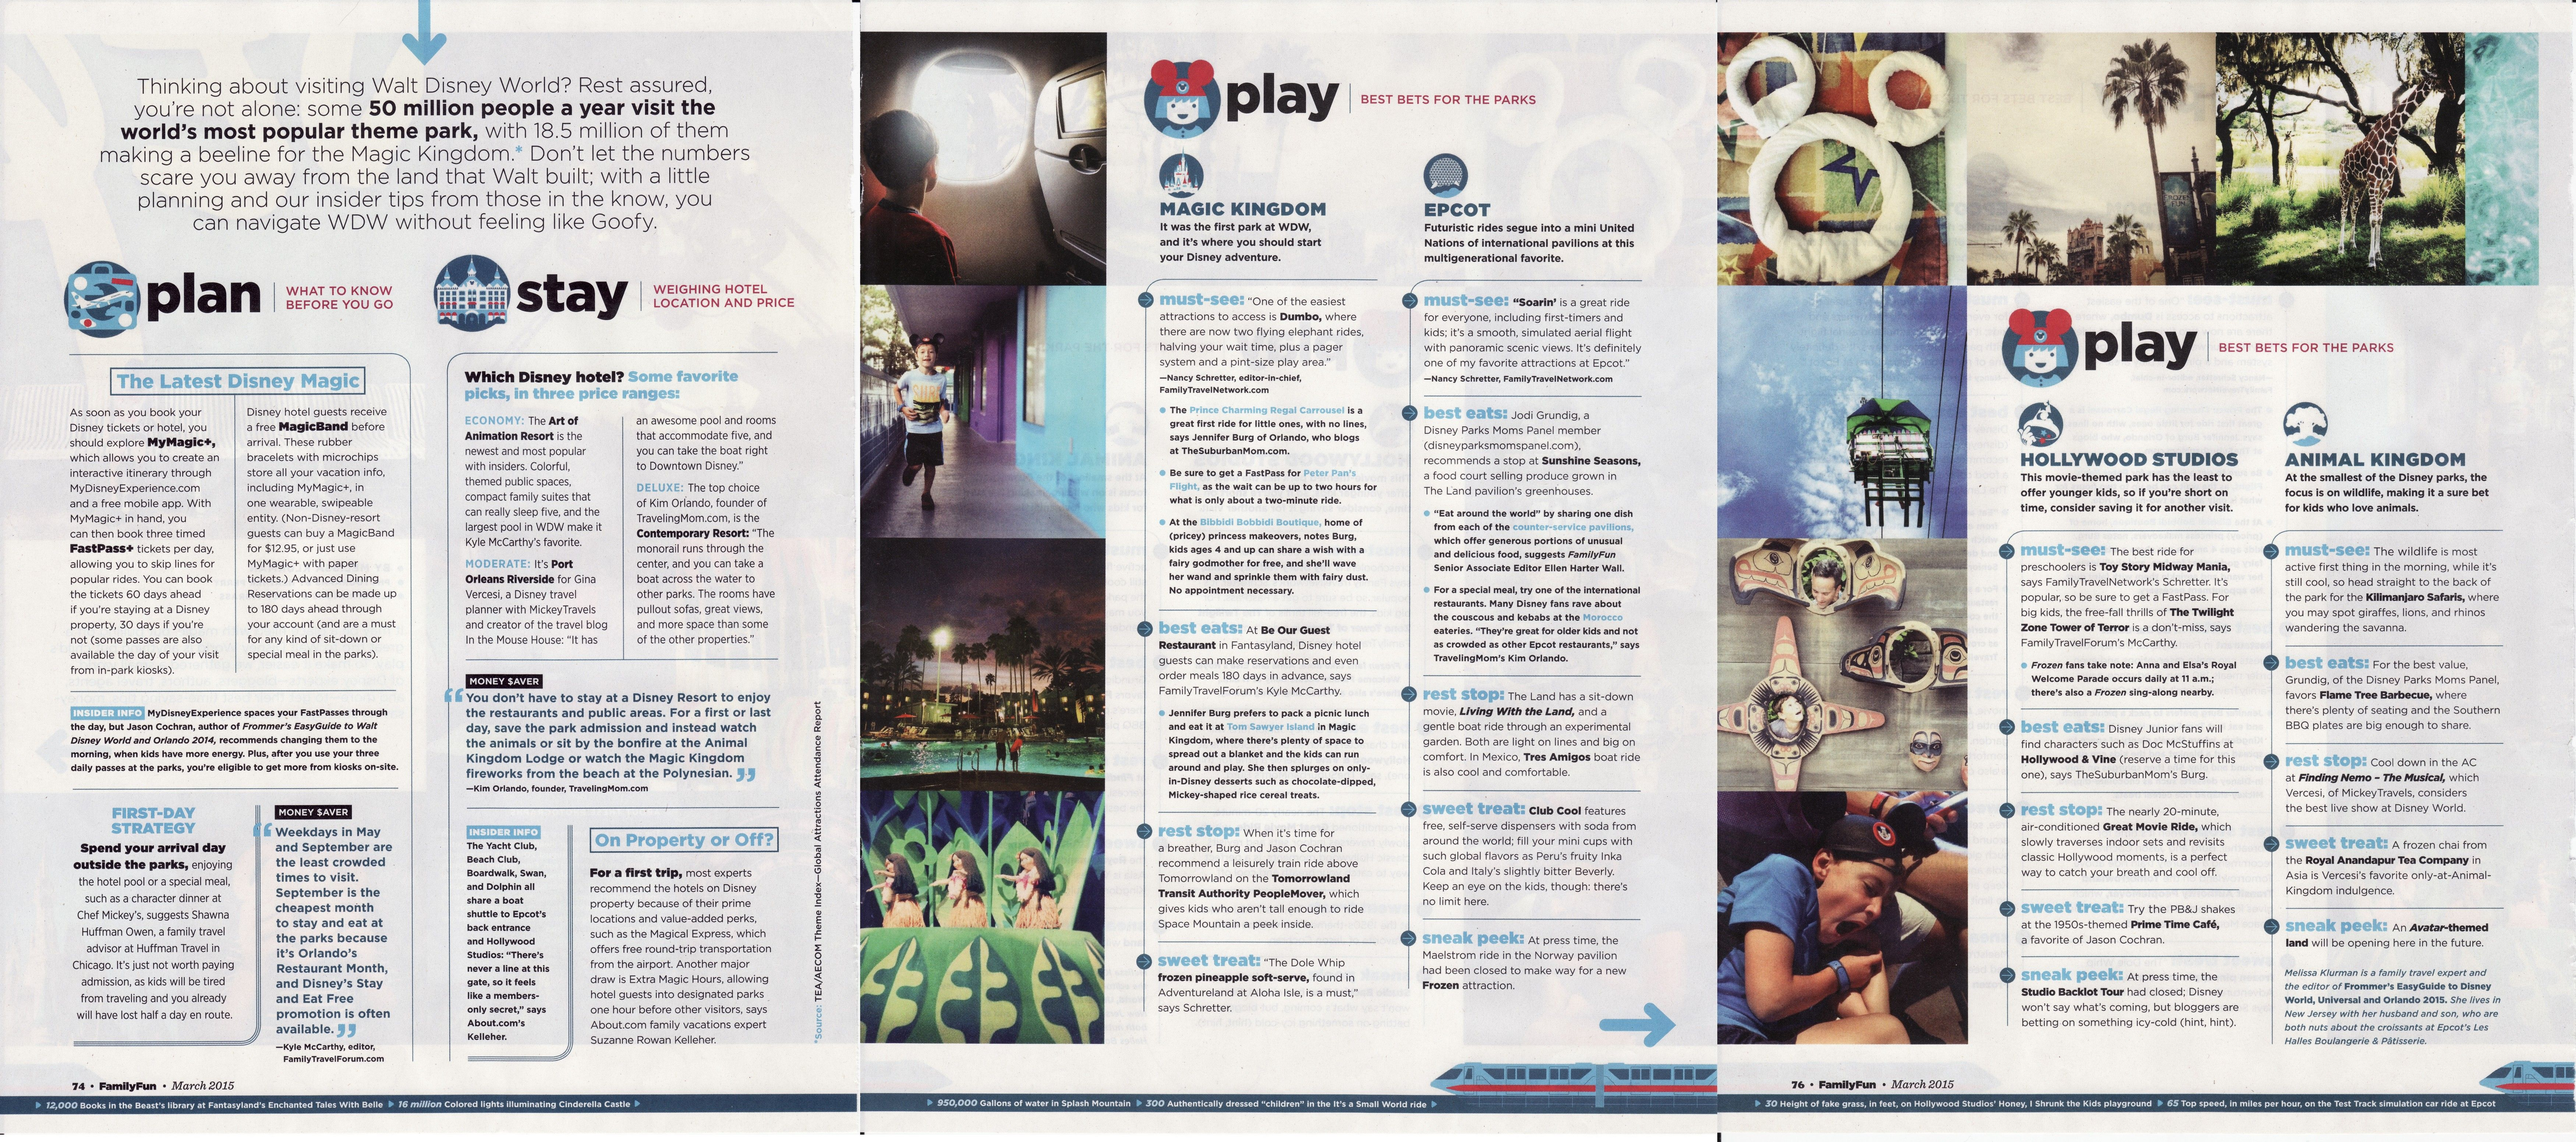 Family Fun Disney Trip planning article (3 pages stitched to one image, zoom in viewer as needed.)